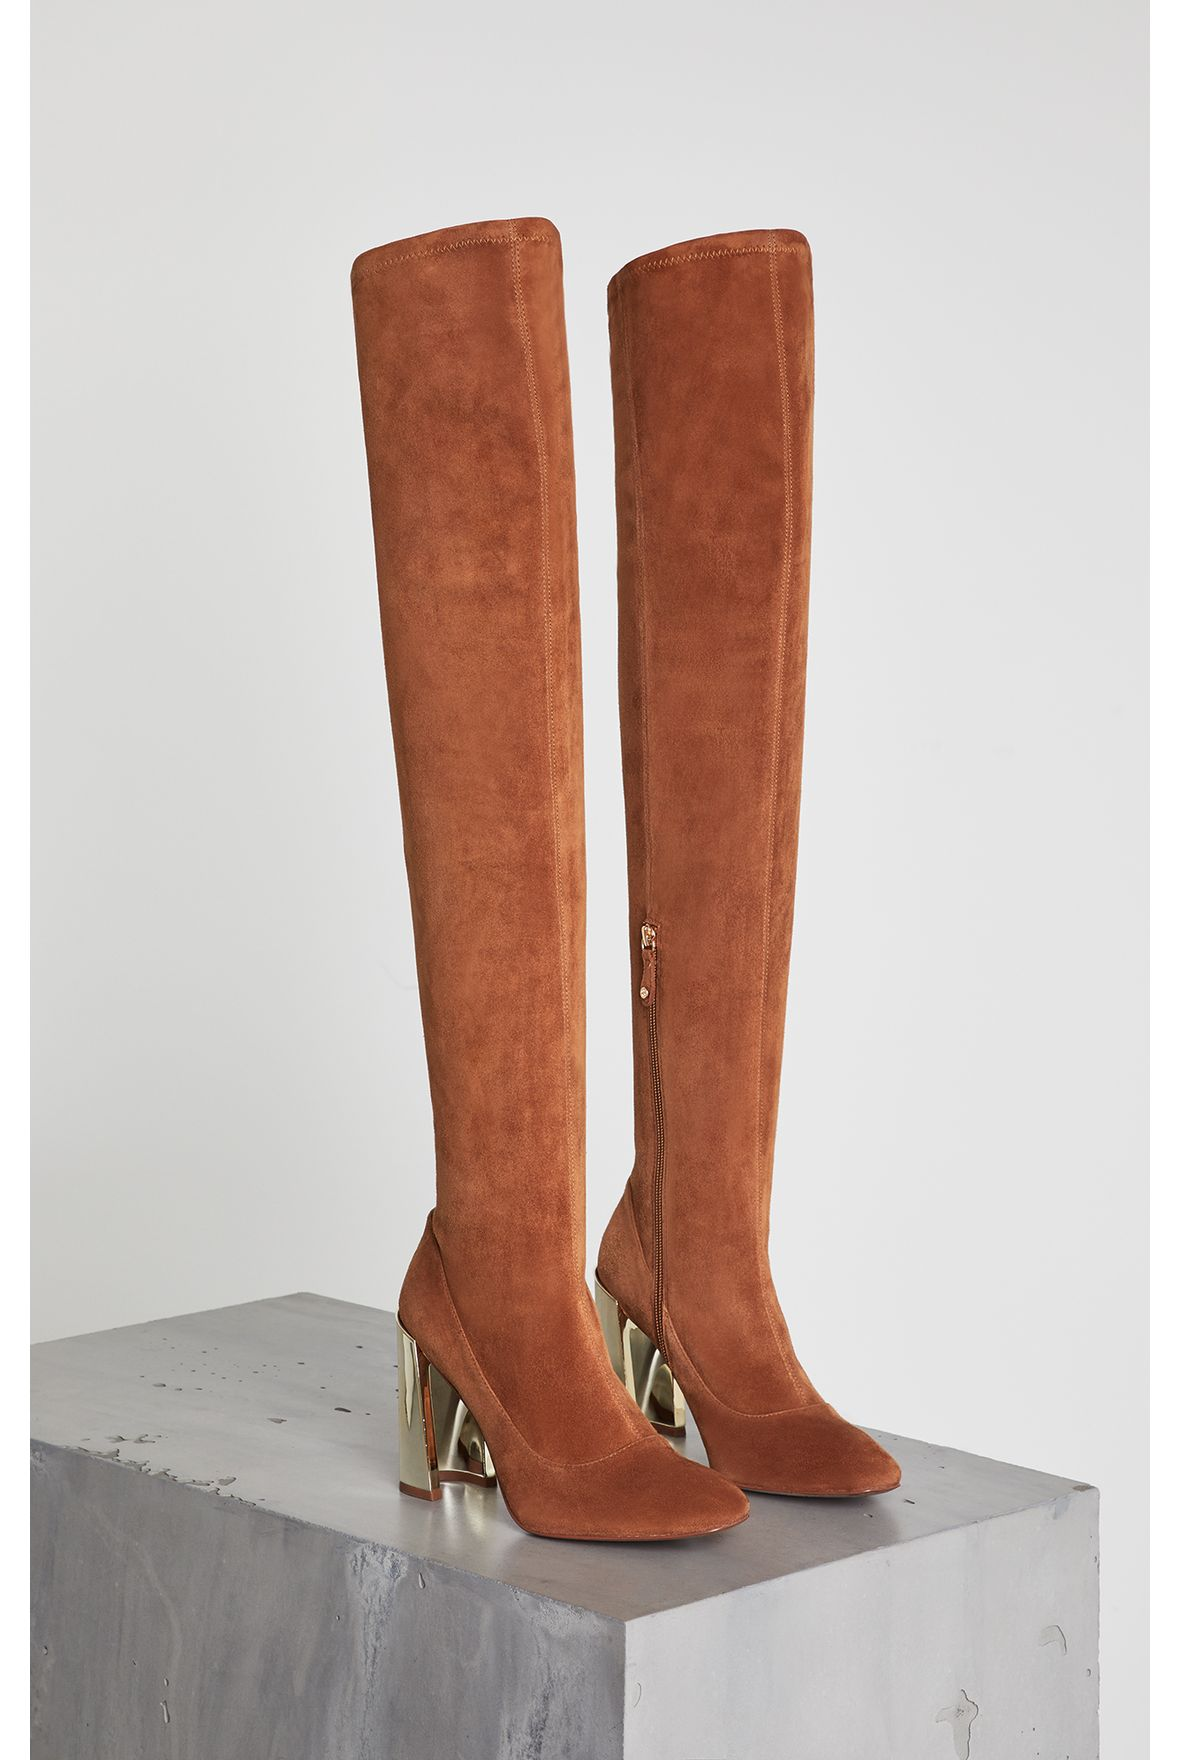 bea-stretch-suede-boot-AZ068_288